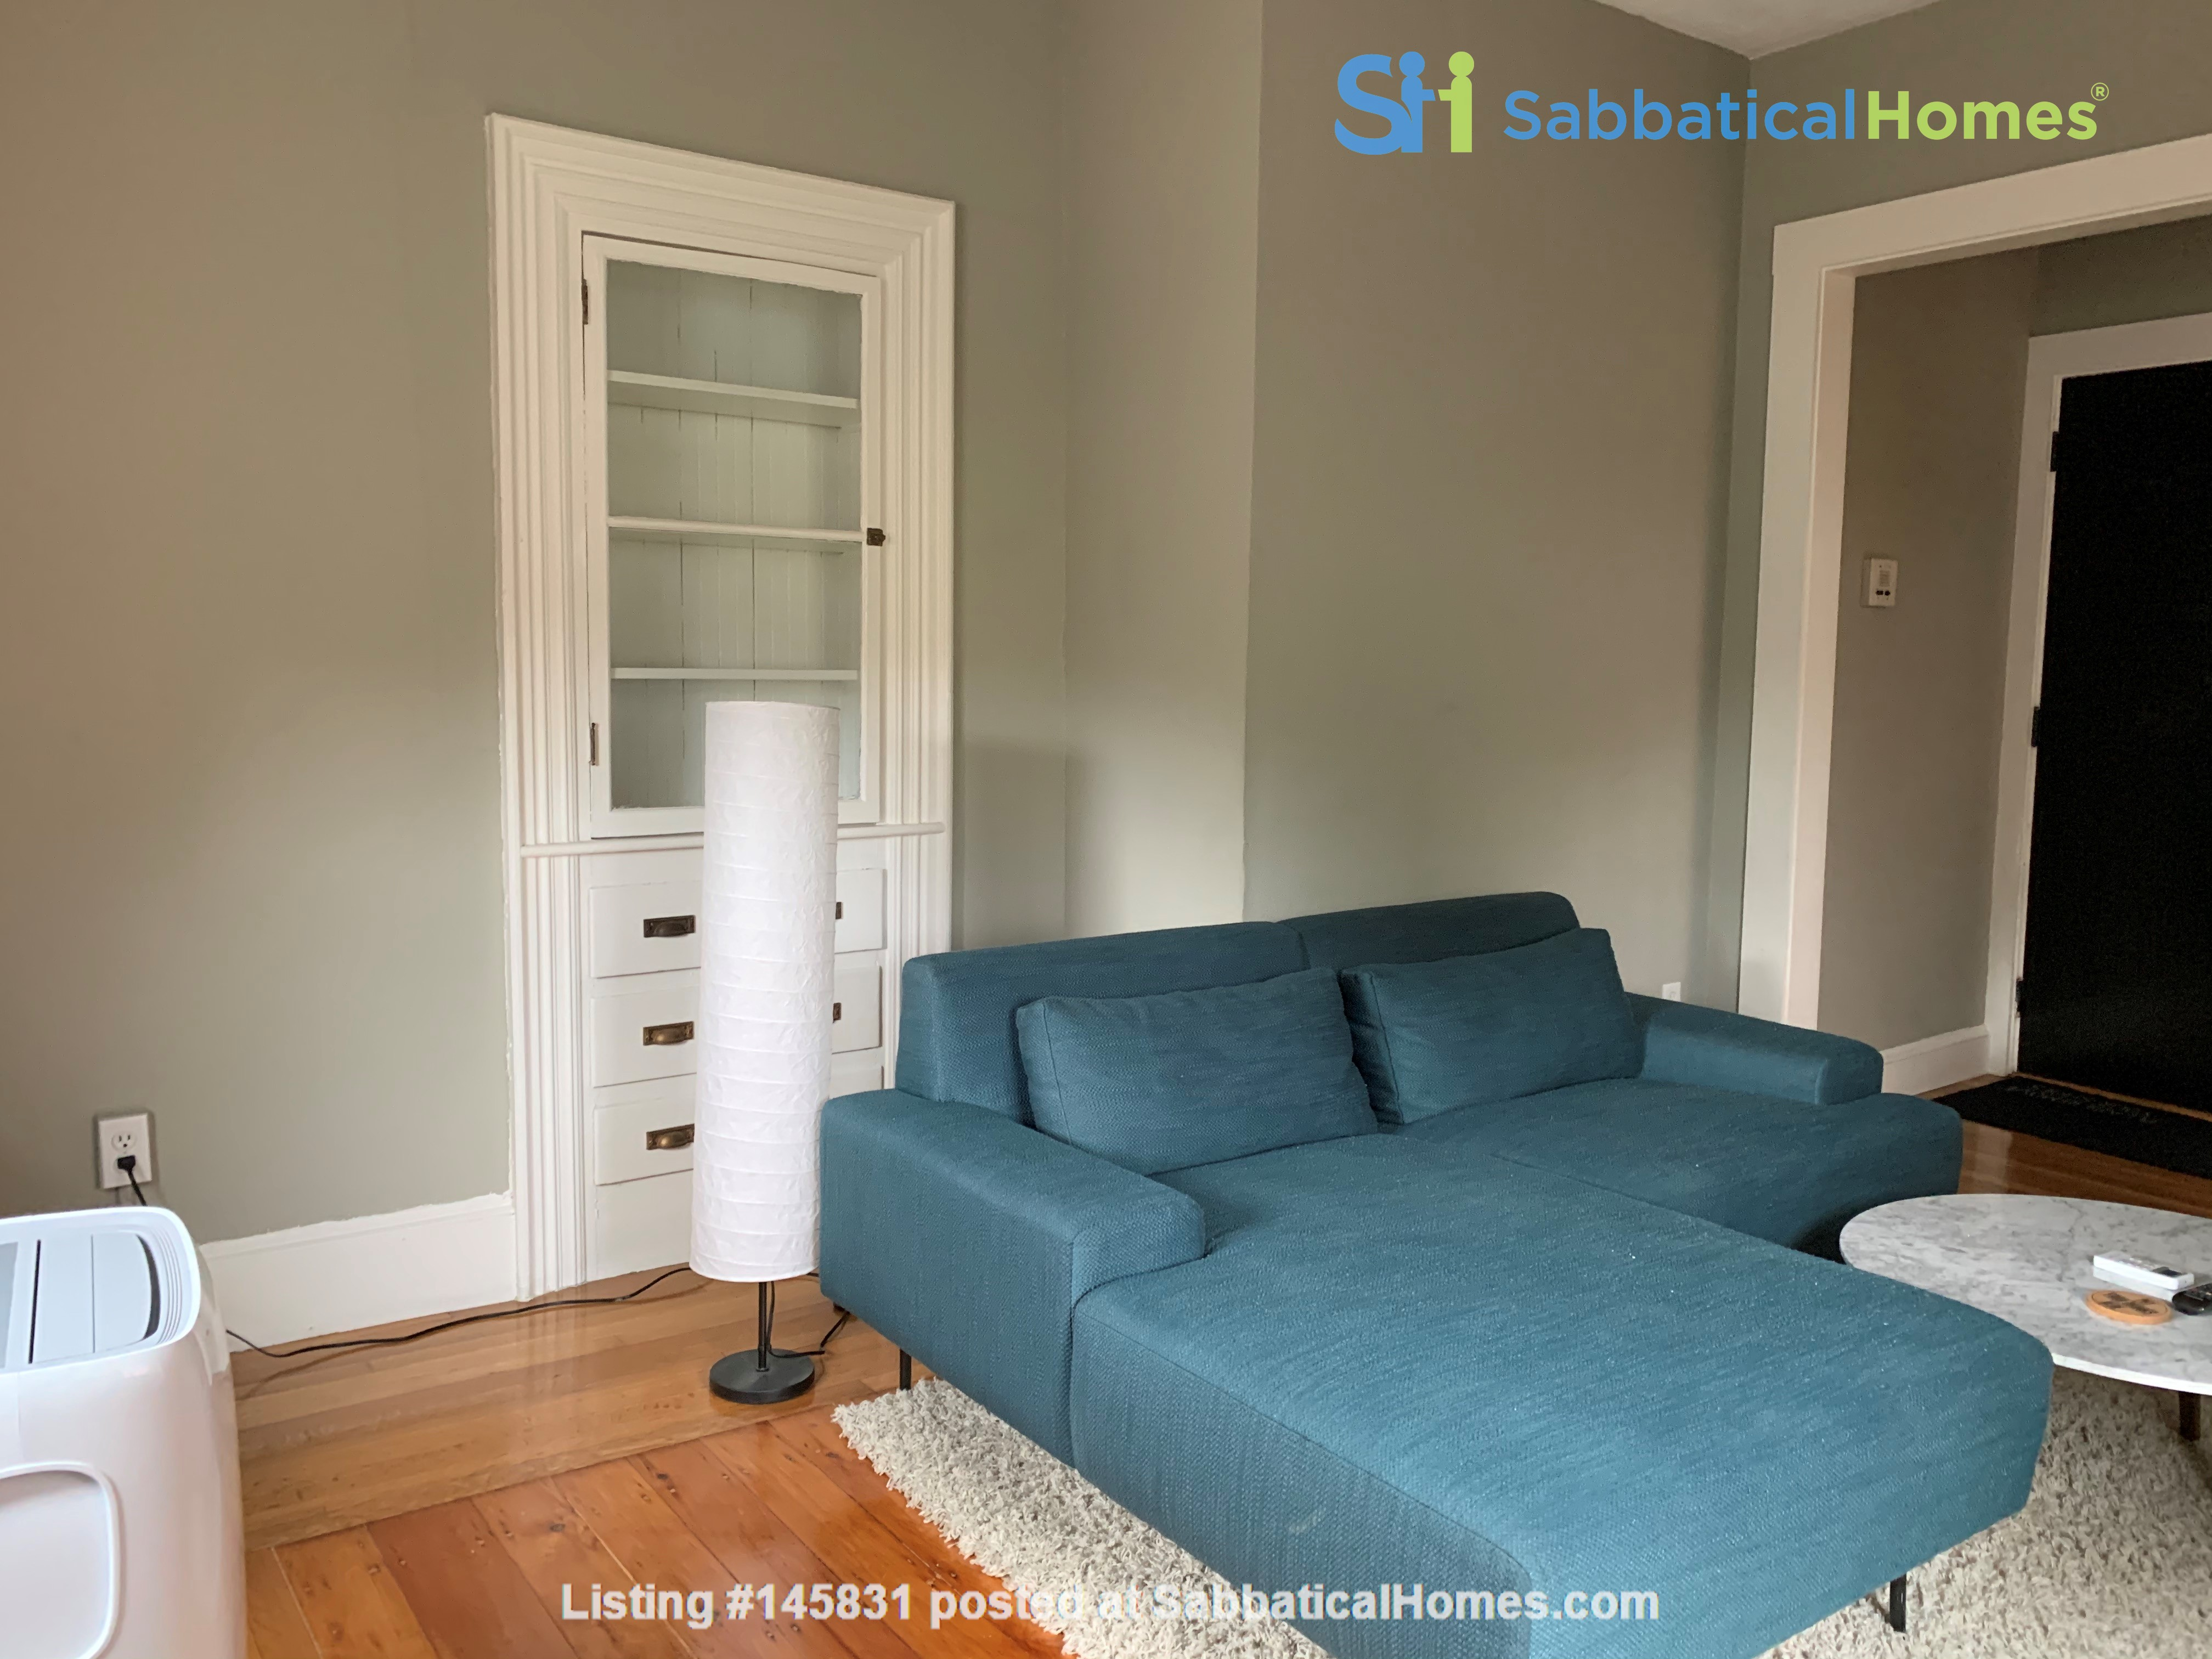 Harvard MIT HKS HBS! Fully furnished all utilities! Pets OK! No fee! Home Rental in Cambridge 7